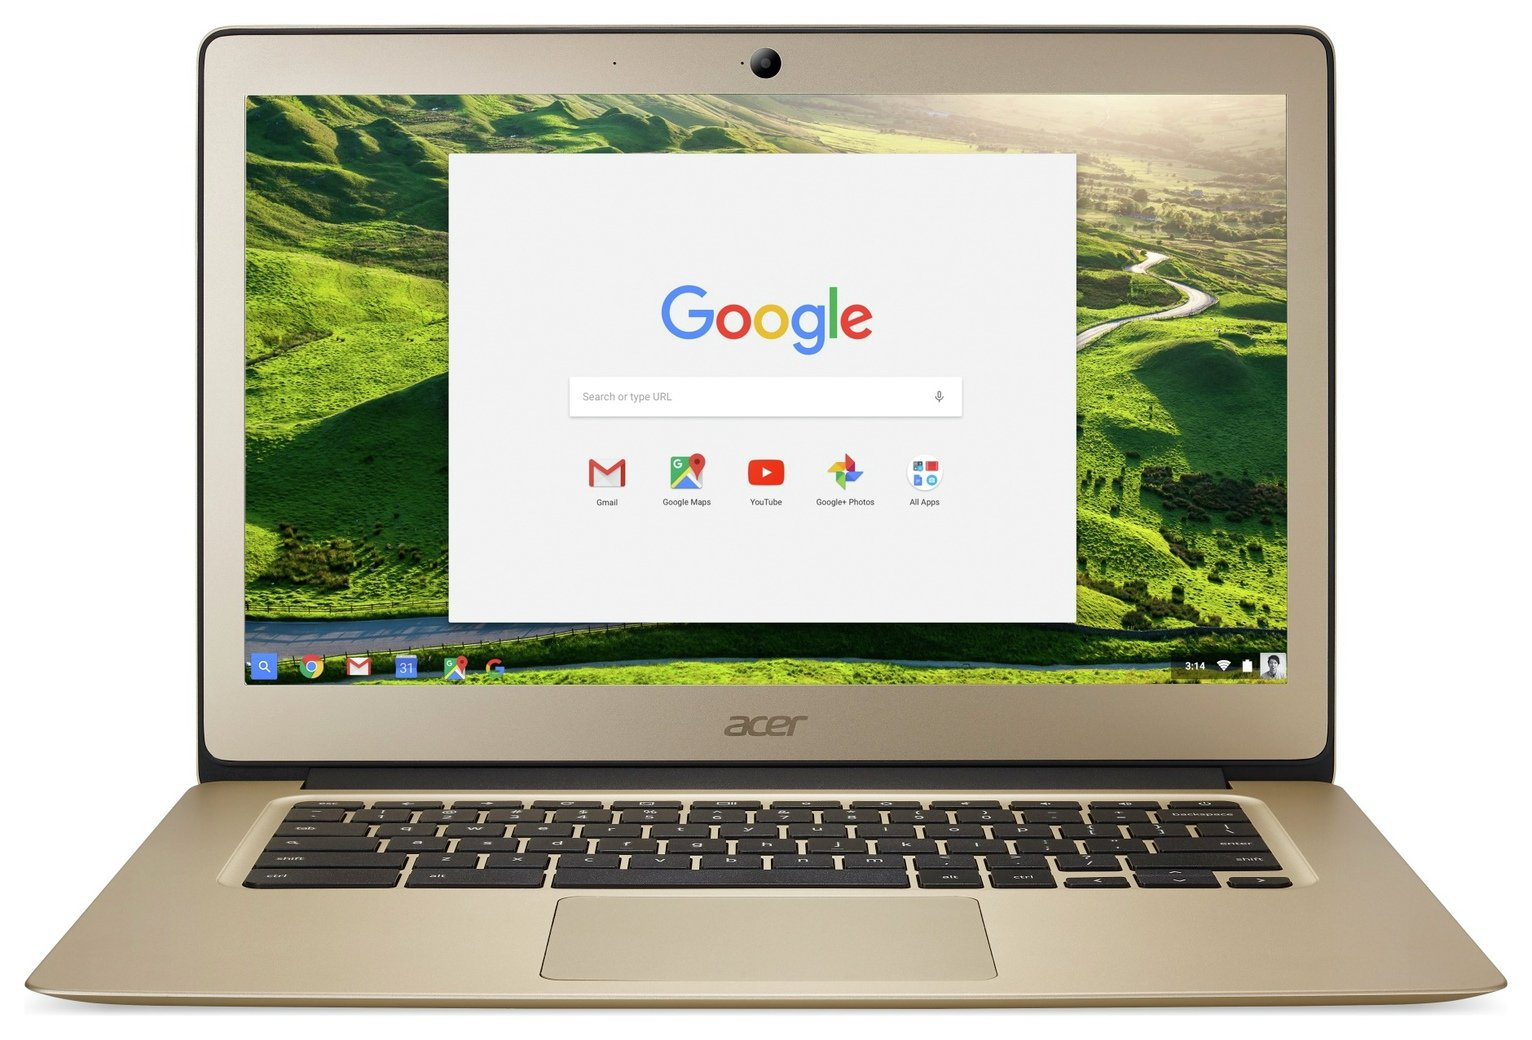 Acer 14 Inch Celeron 4GB 32GB Chromebook - Gold